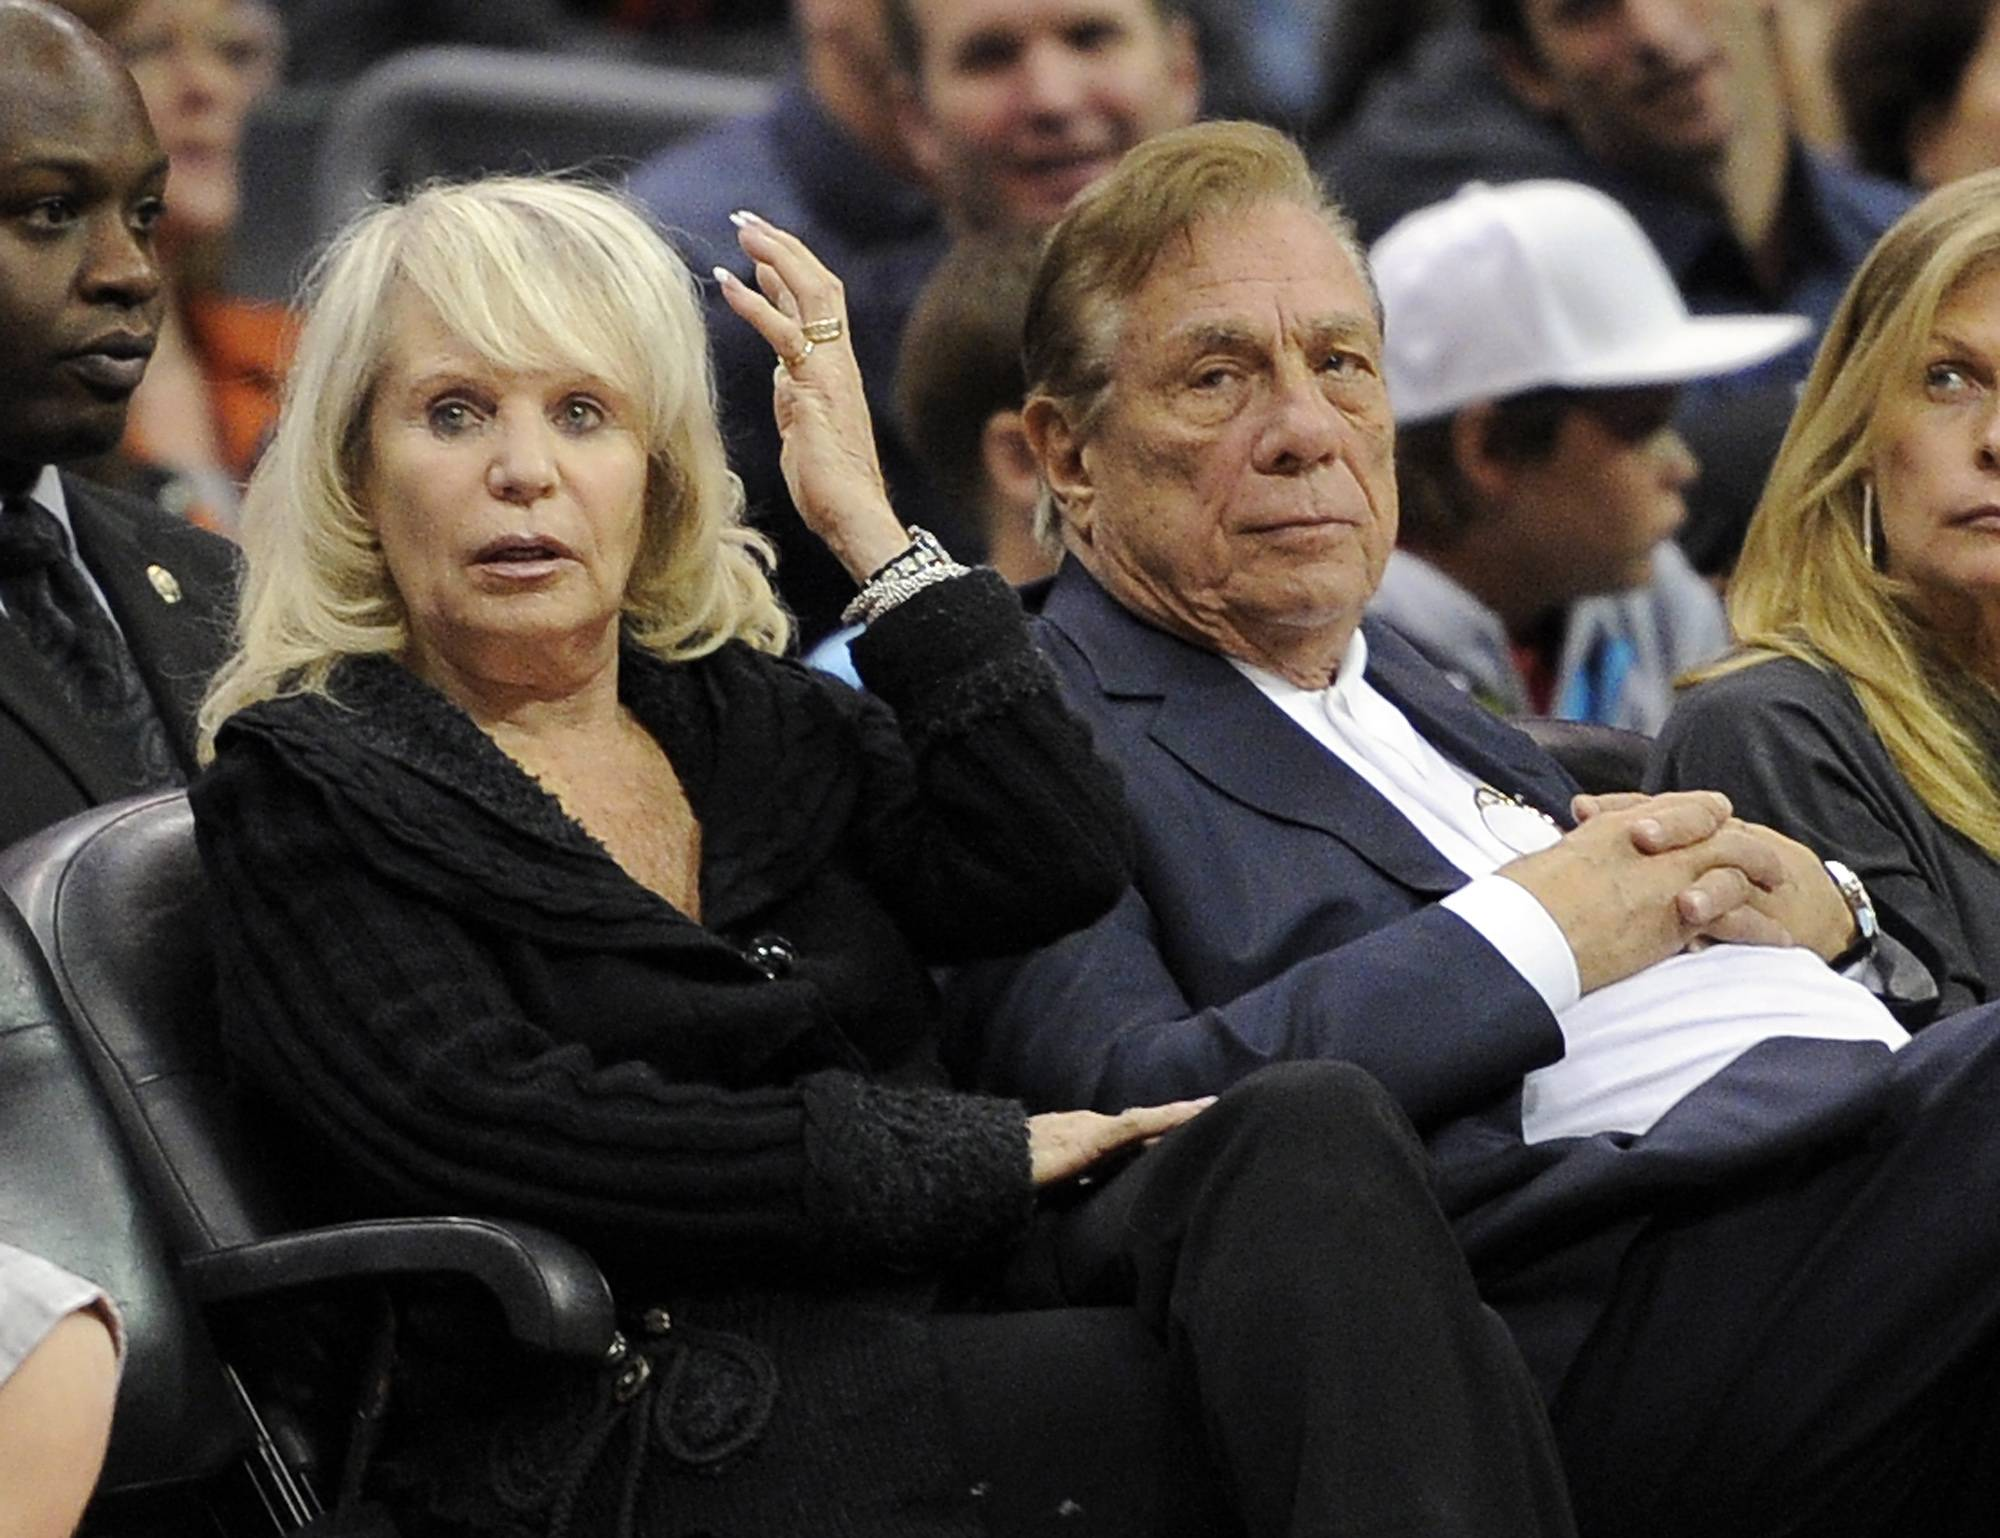 Donald Sterling has agreed to surrender his stake of the Clippers to his wife, and she is moving forward with selling the team. The couple made the agreement after weeks of discussion